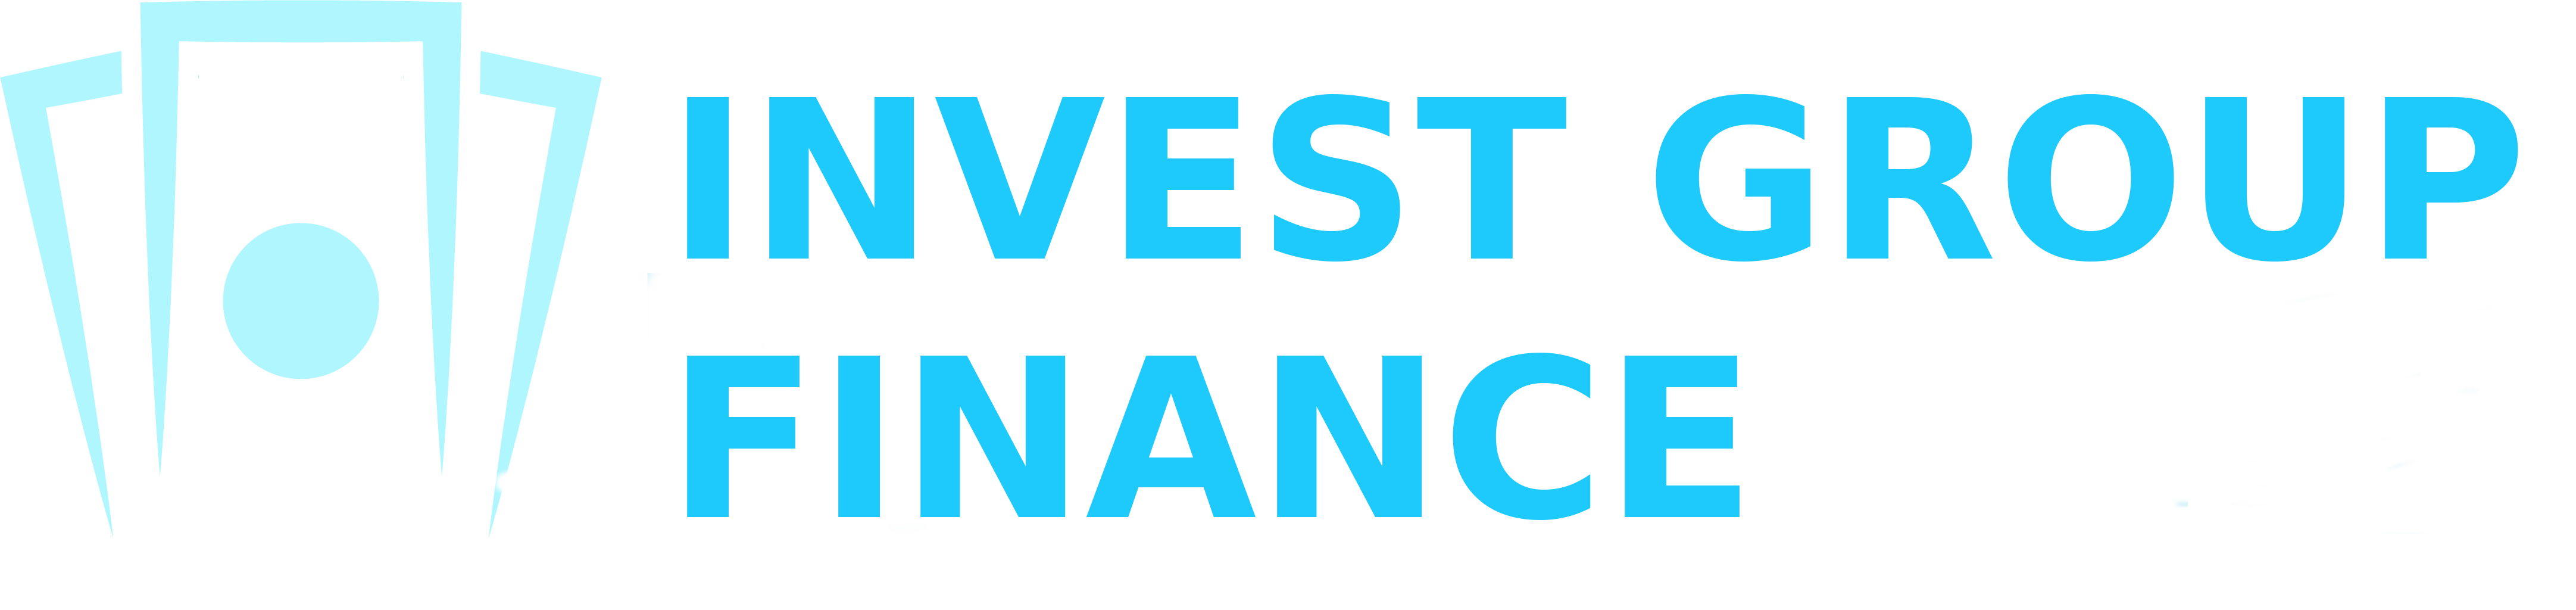 INVEST GROUP FINANCE